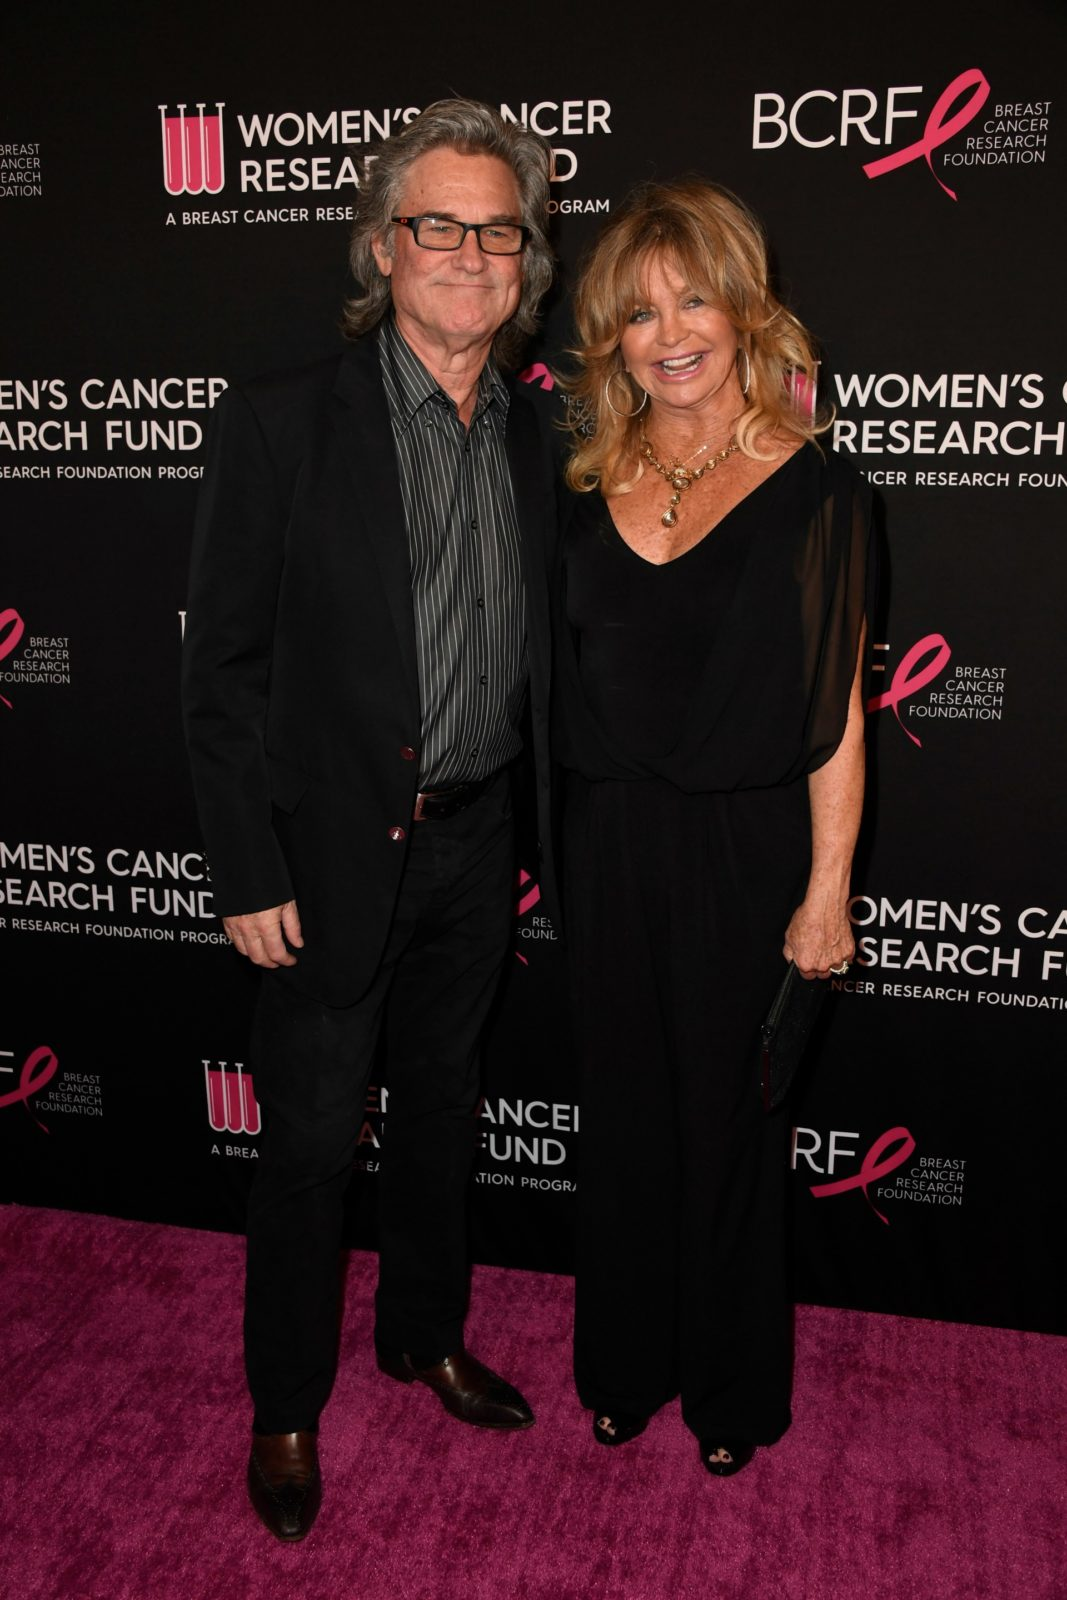 Goldie Hawn and Kurt Russell hit the red carpet for a charity event in California last week. Source: Getty